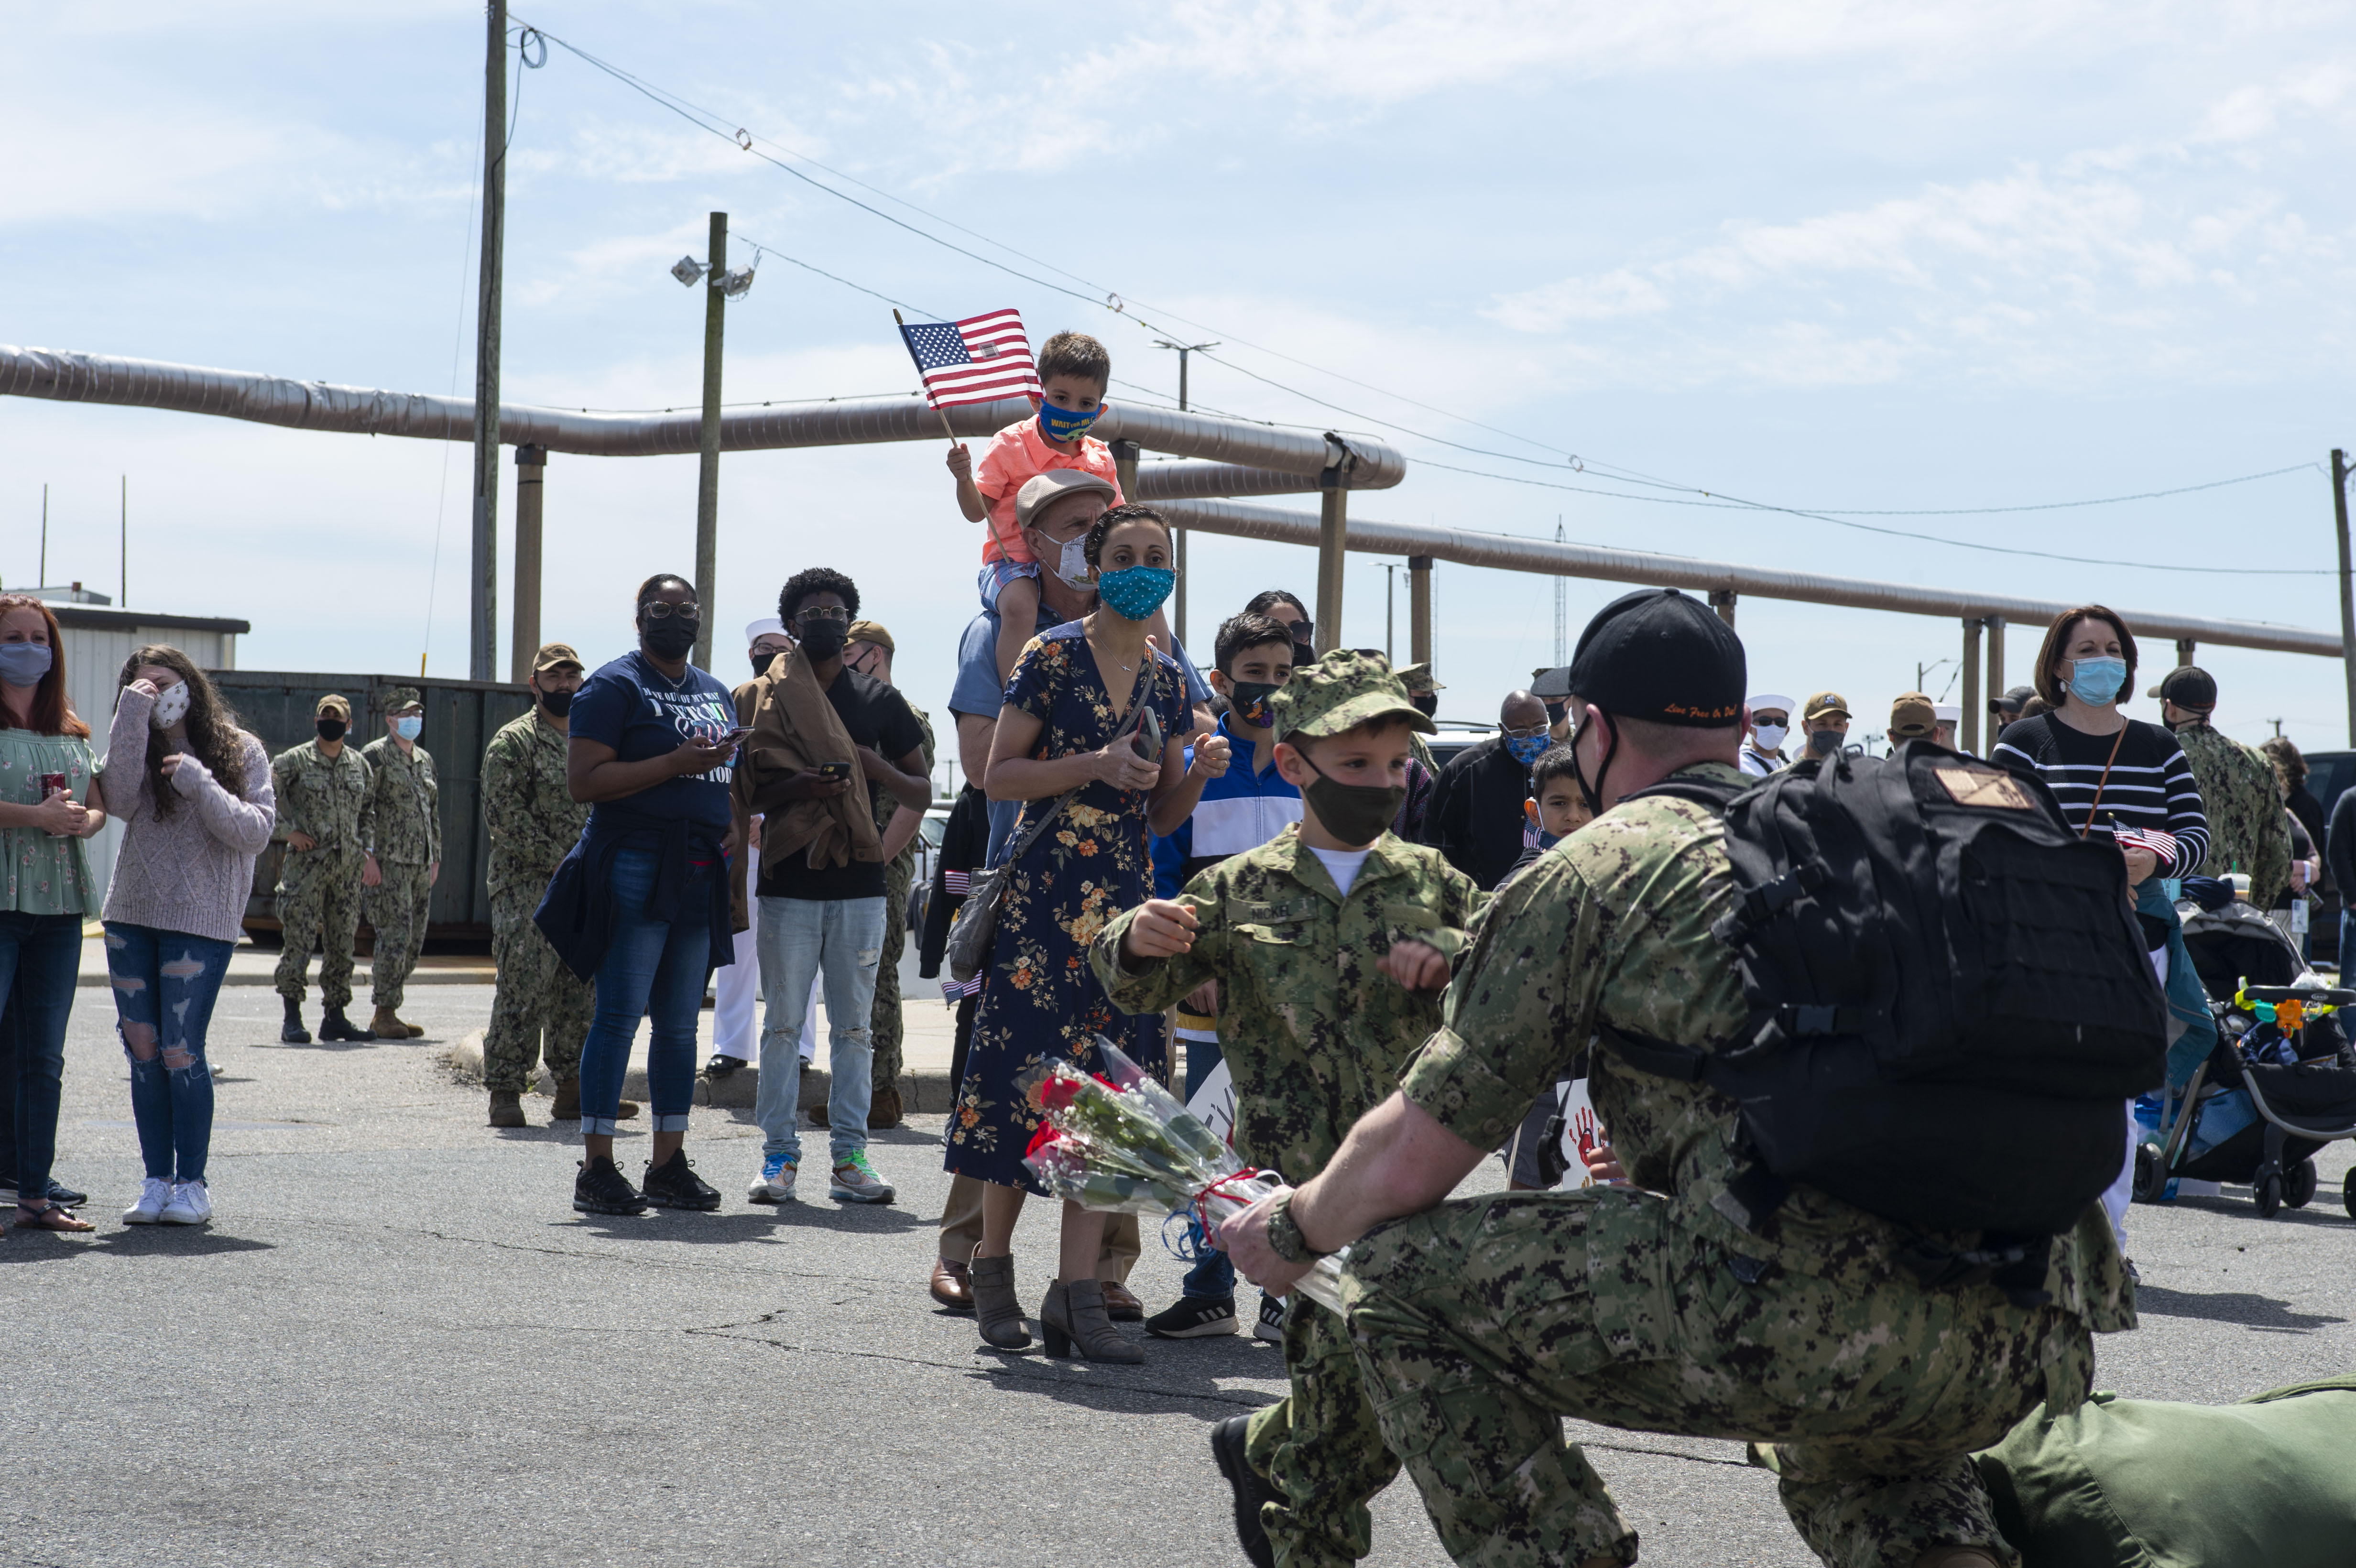 New Hampshire returns from a six-month deployment that supported national security interests and maritime security operations at sea.